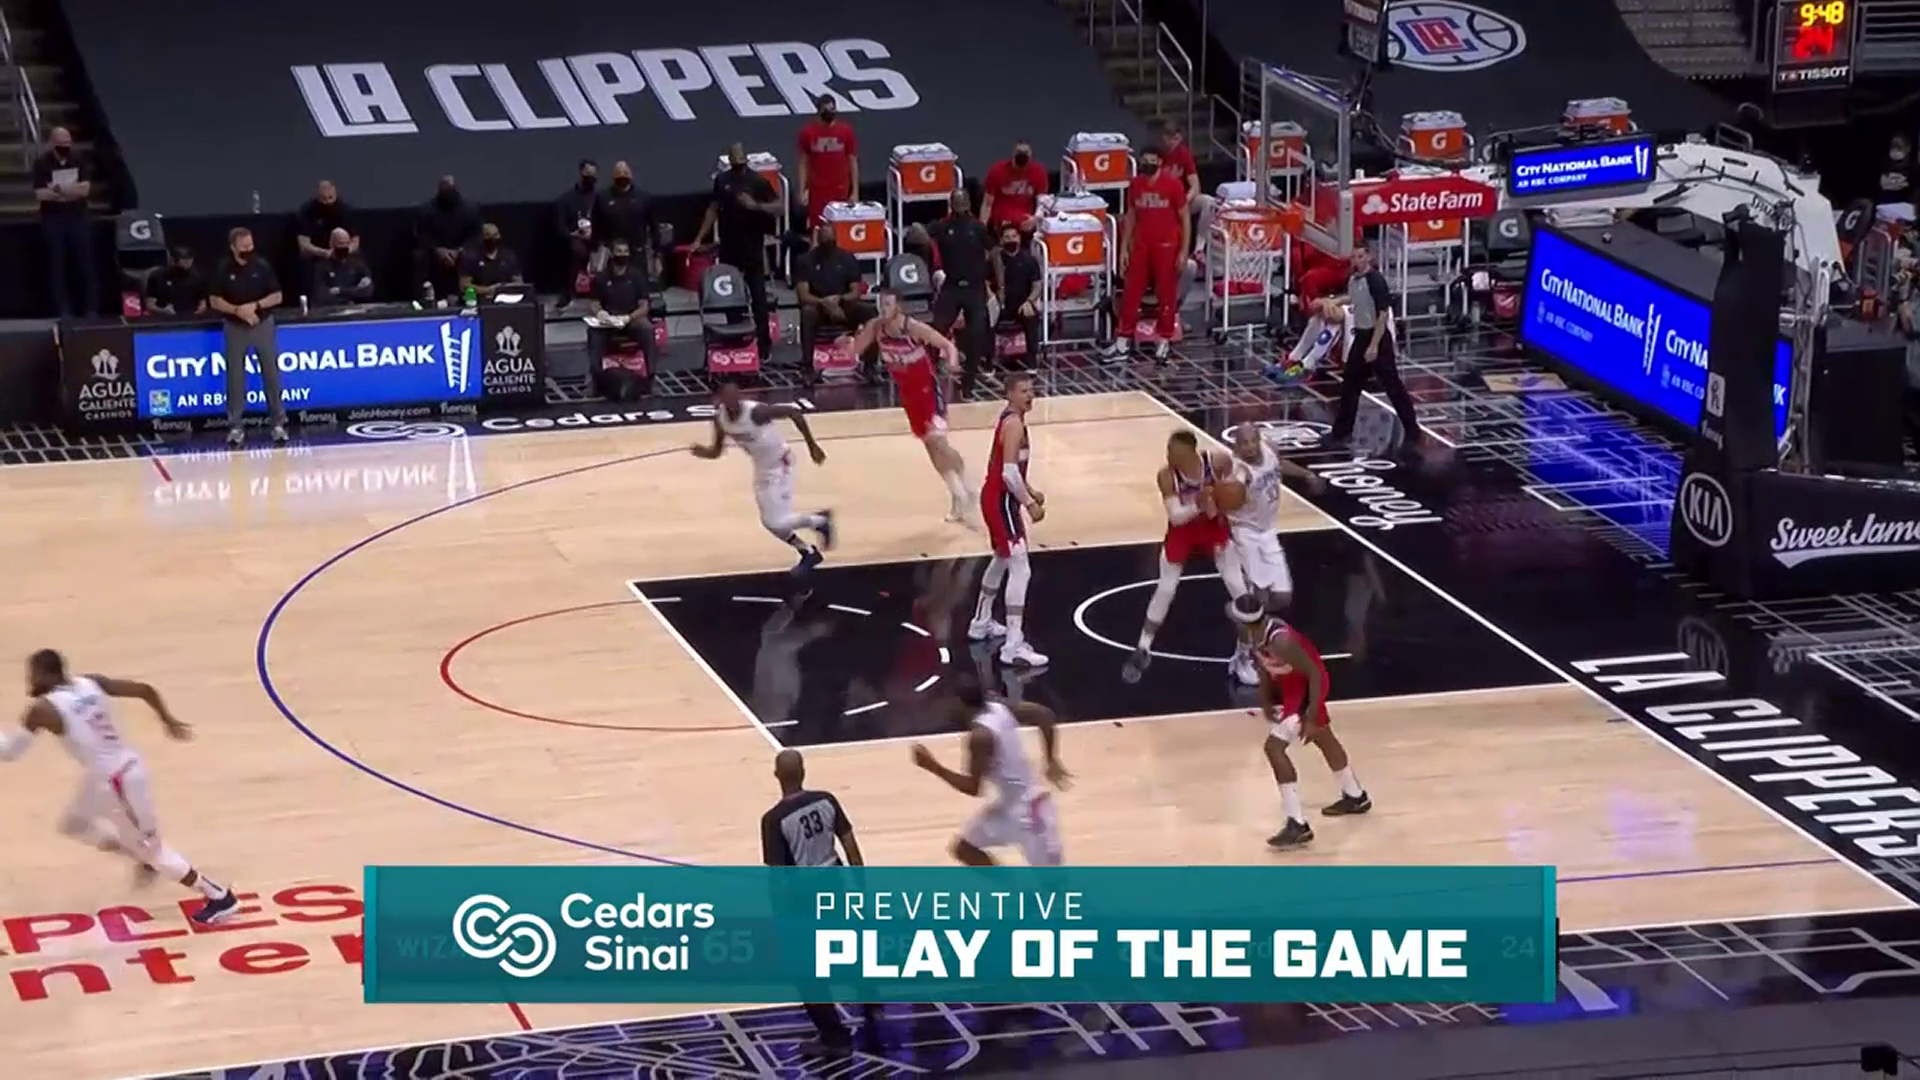 Cedars-Sinai Preventive Play of the Game | Clippers vs Wizards (2.23.21)